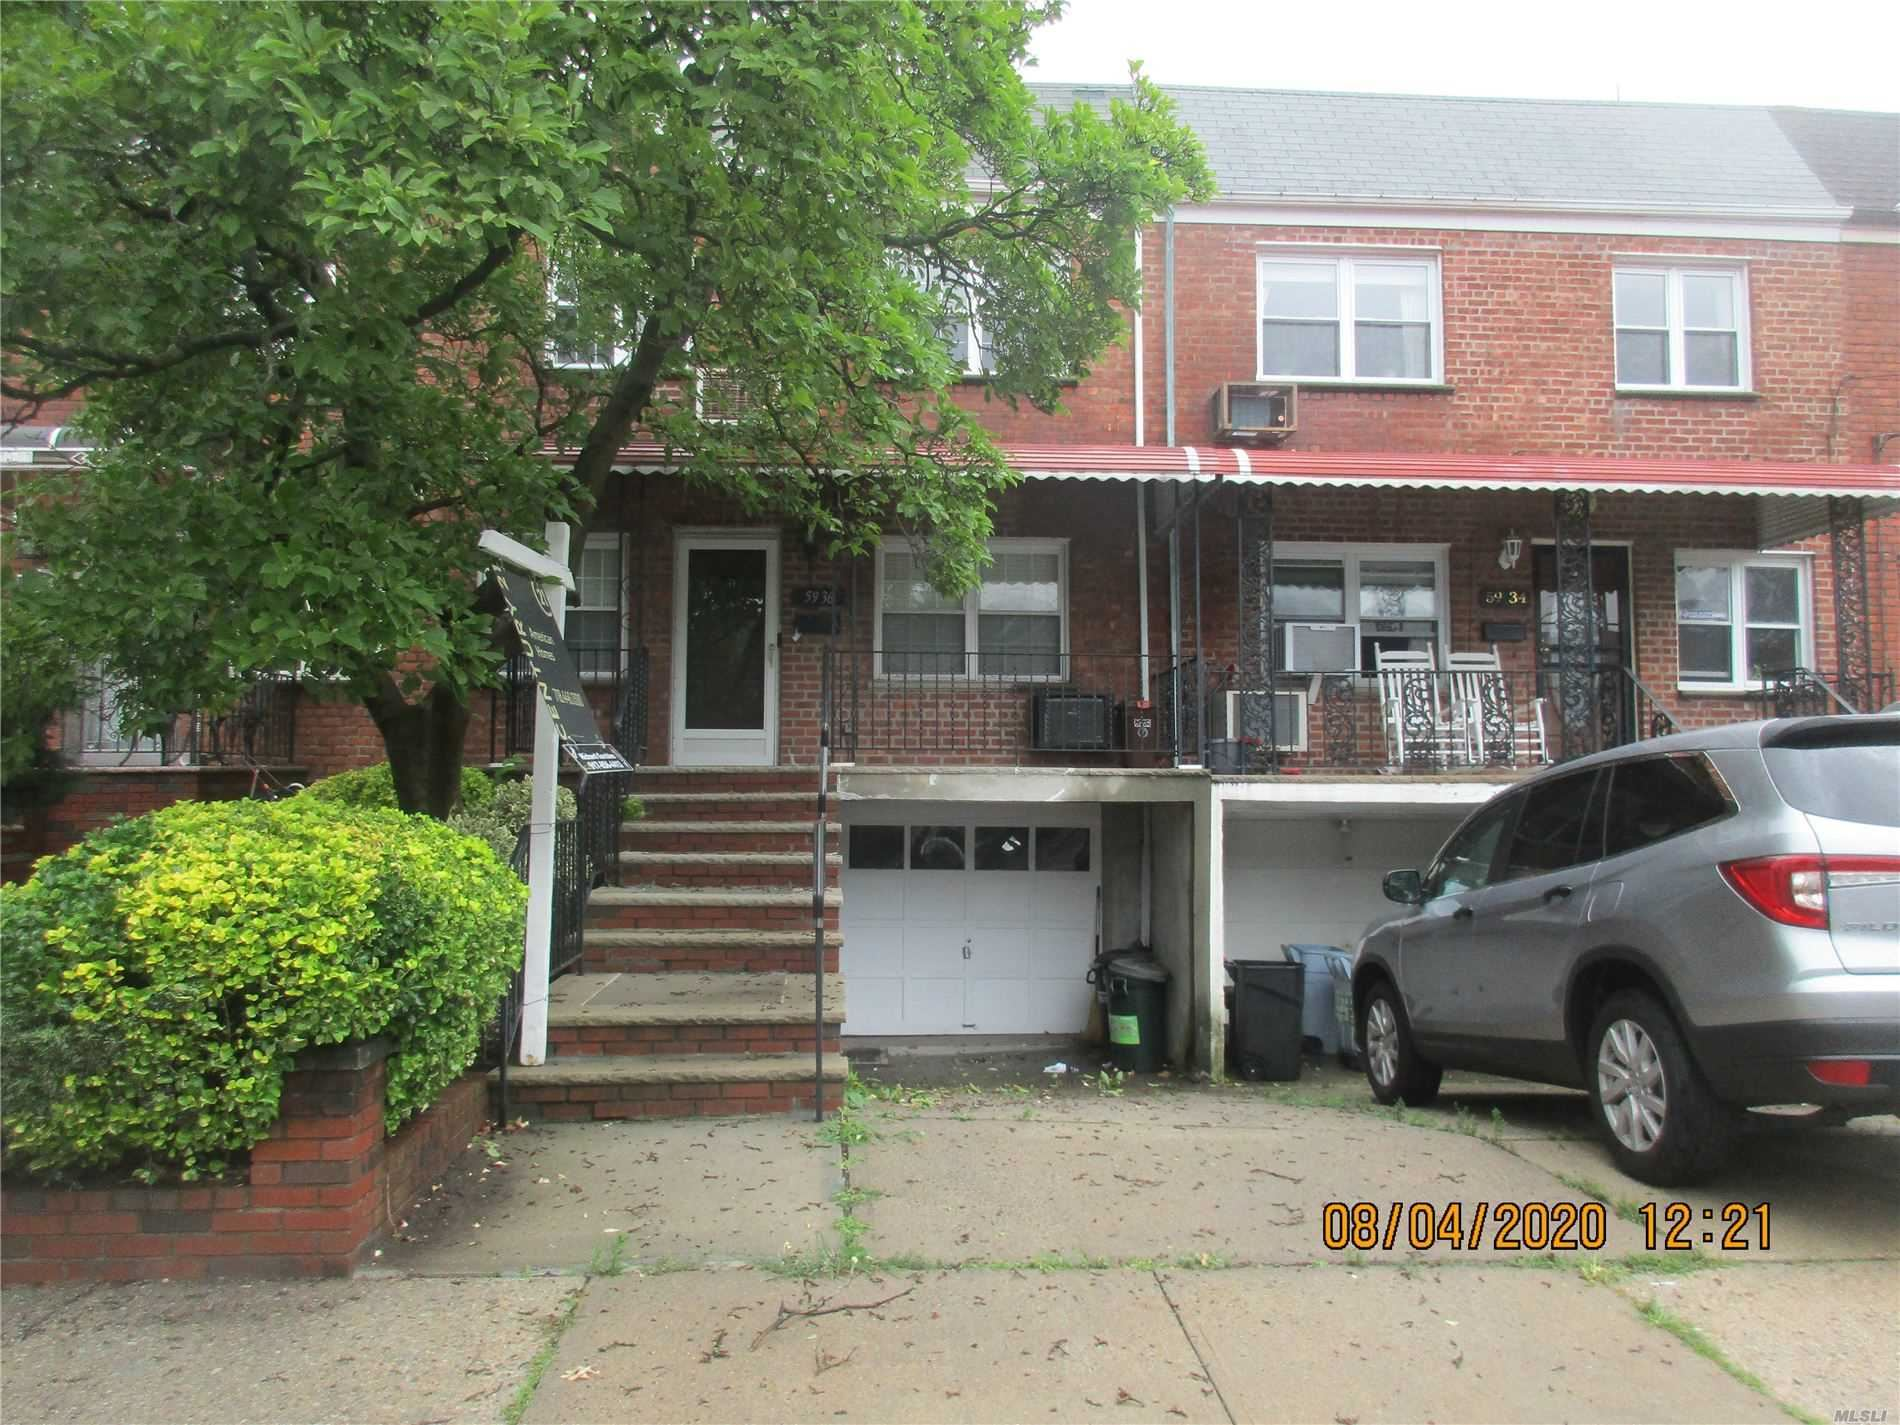 59-36 70th St, Maspeth, NY 11378 - MLS#: 3240329